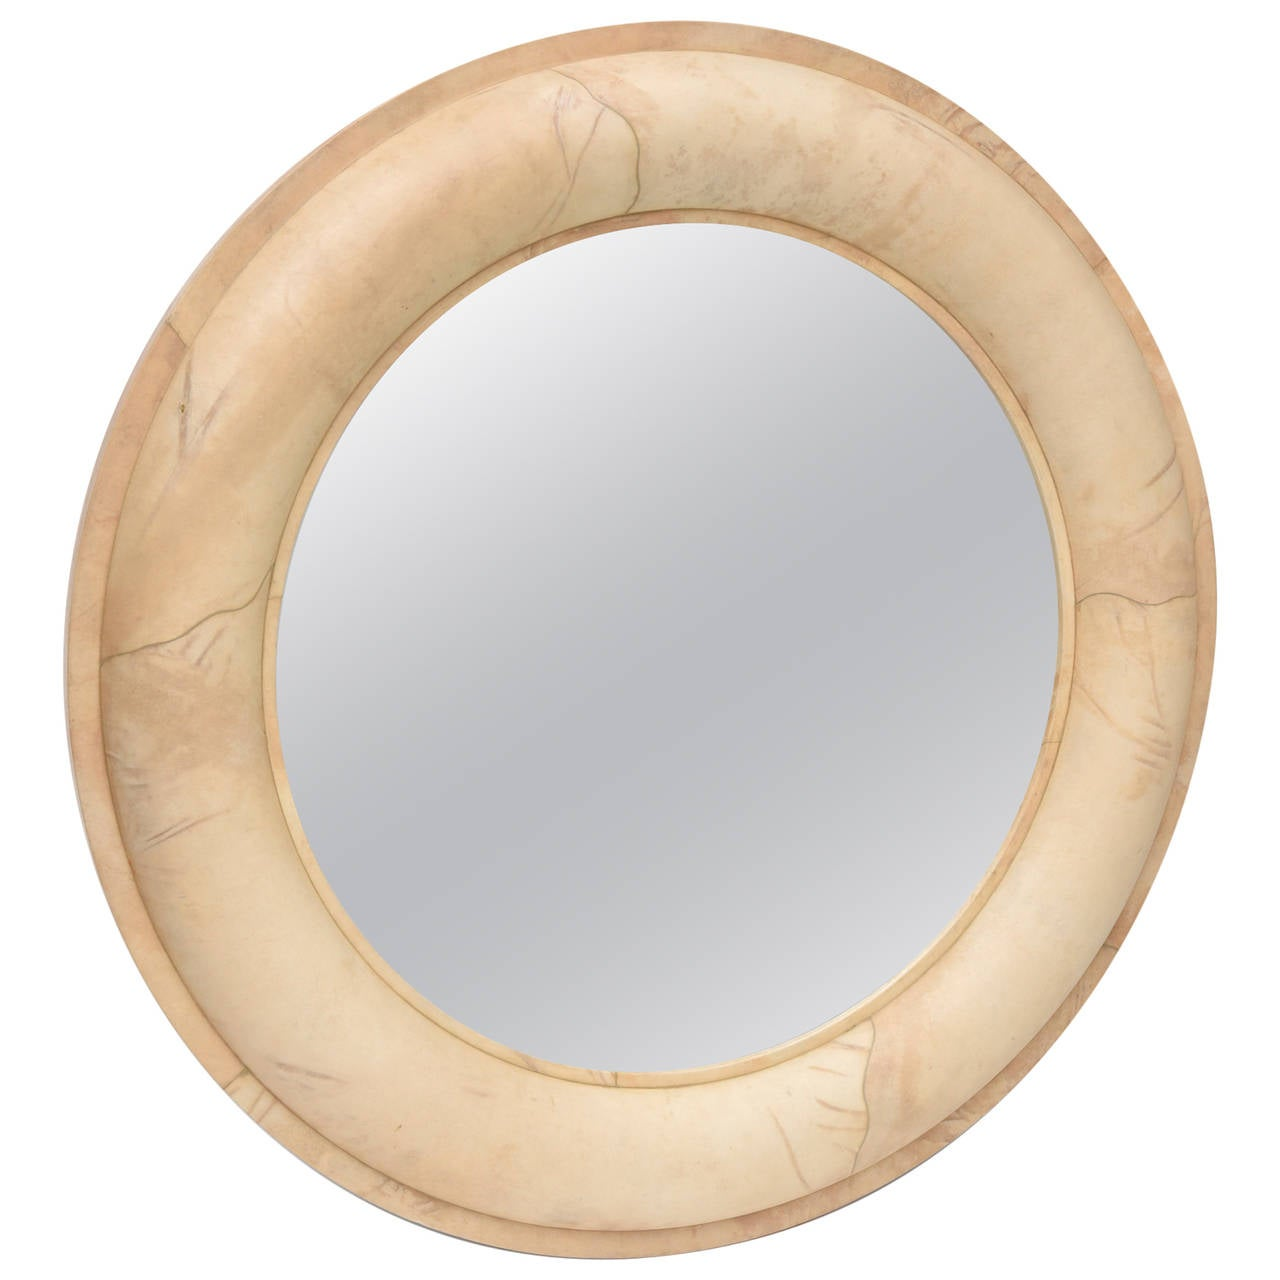 Karl Springer Goatskin Mirror